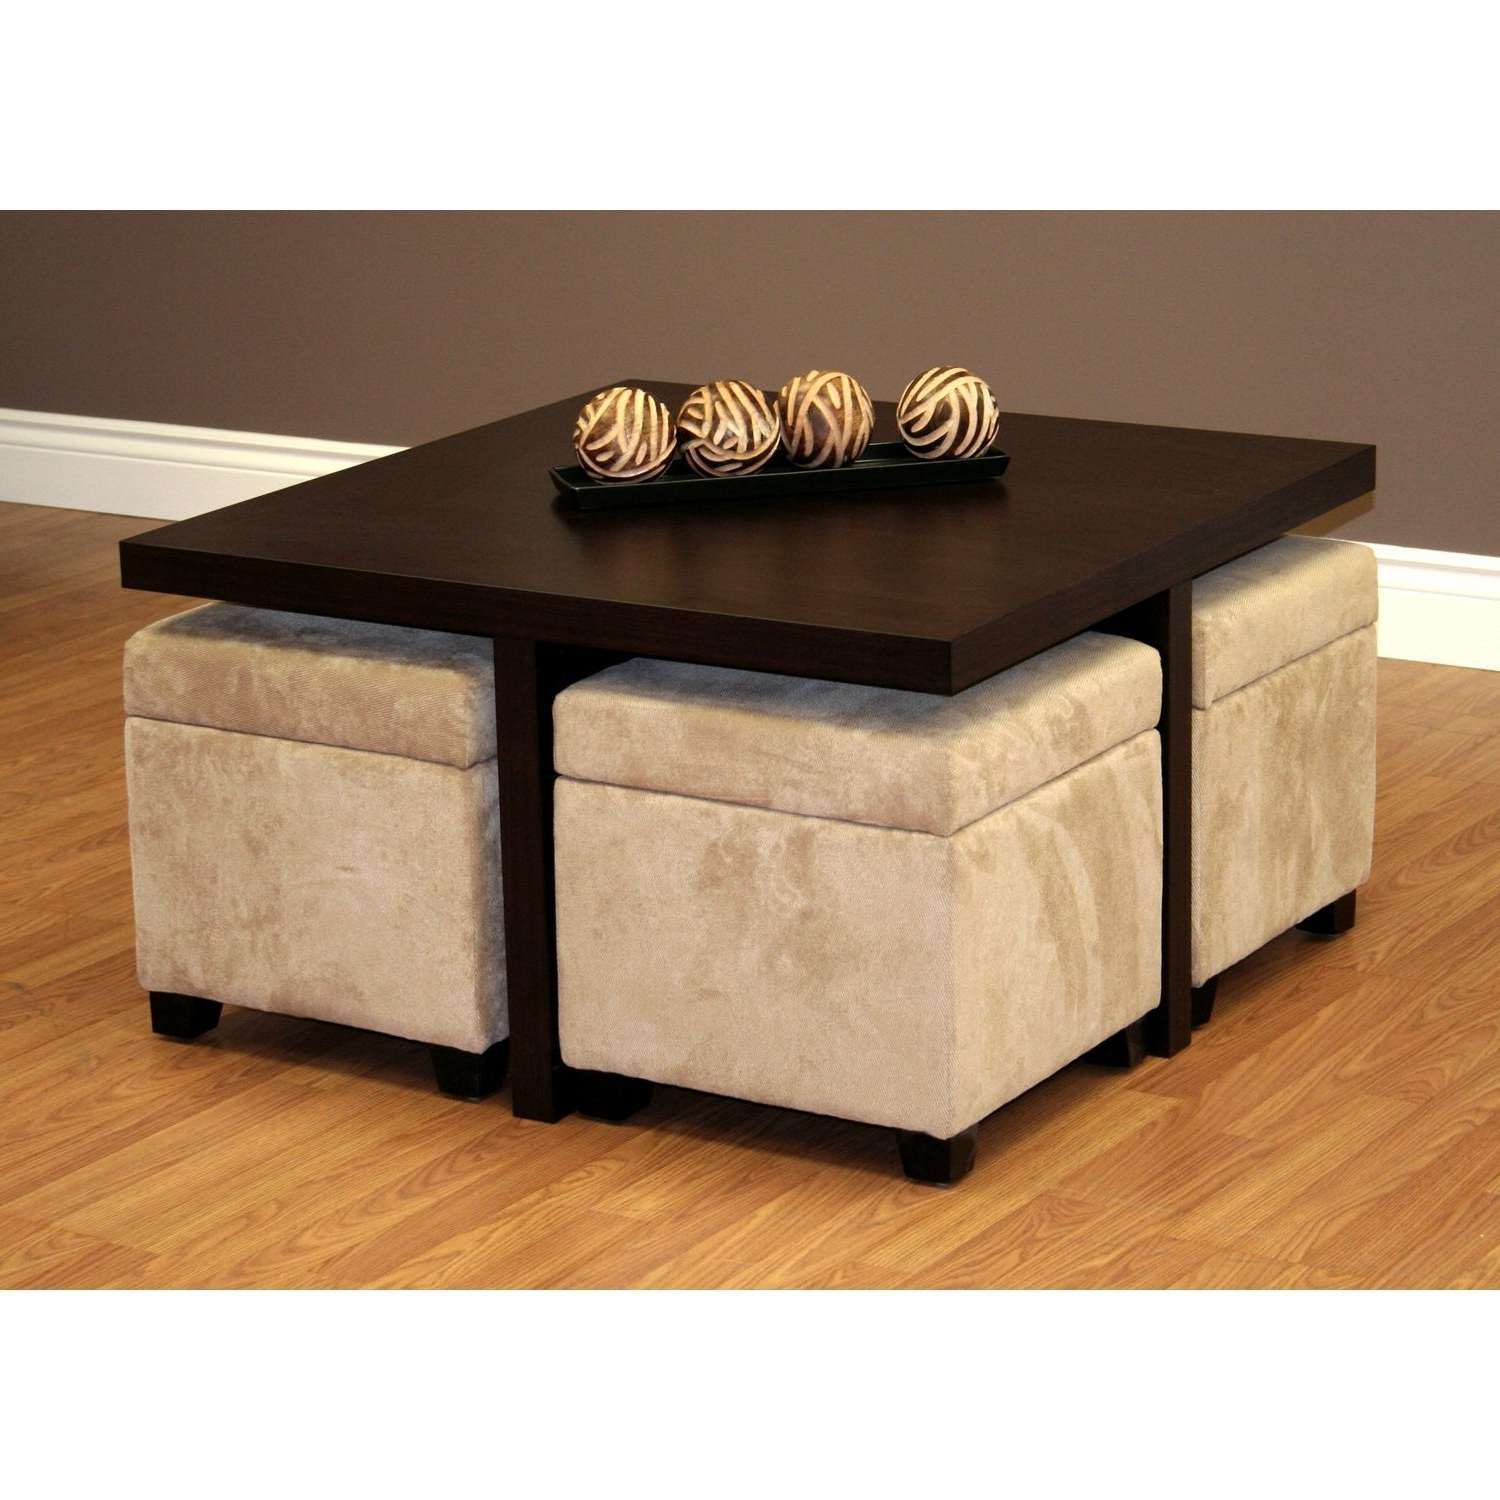 Most Popular Coffee Tables With Storage Throughout Coffee Table : Amazing Ottoman Coffee Table Amazing Coffee Table (View 12 of 20)